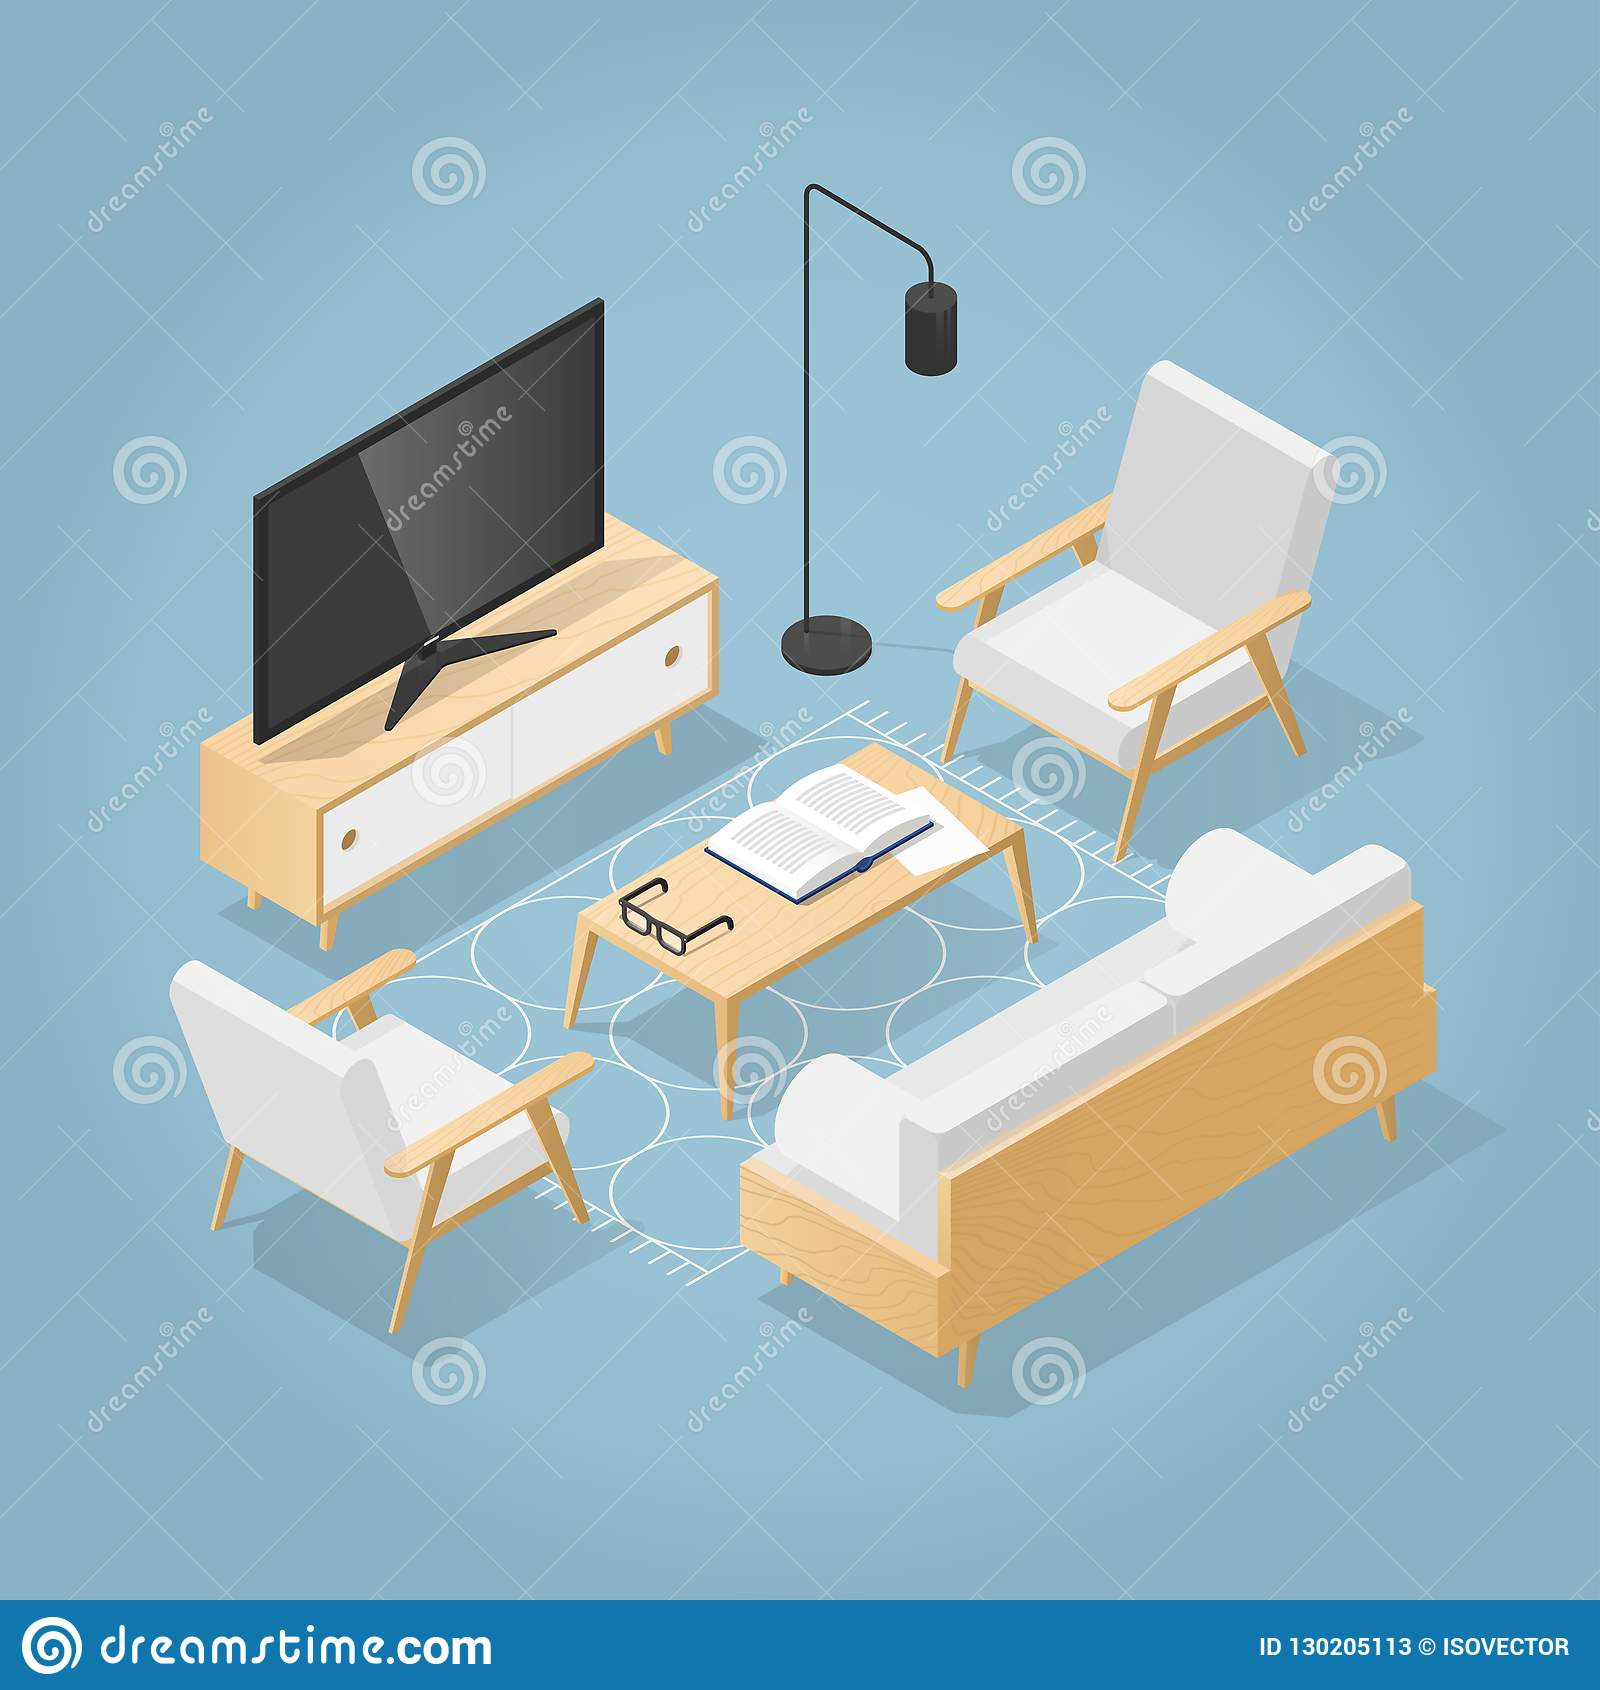 Isometric Living Room Illustration Stock Vector Illustration Of Book Colorful 130205113